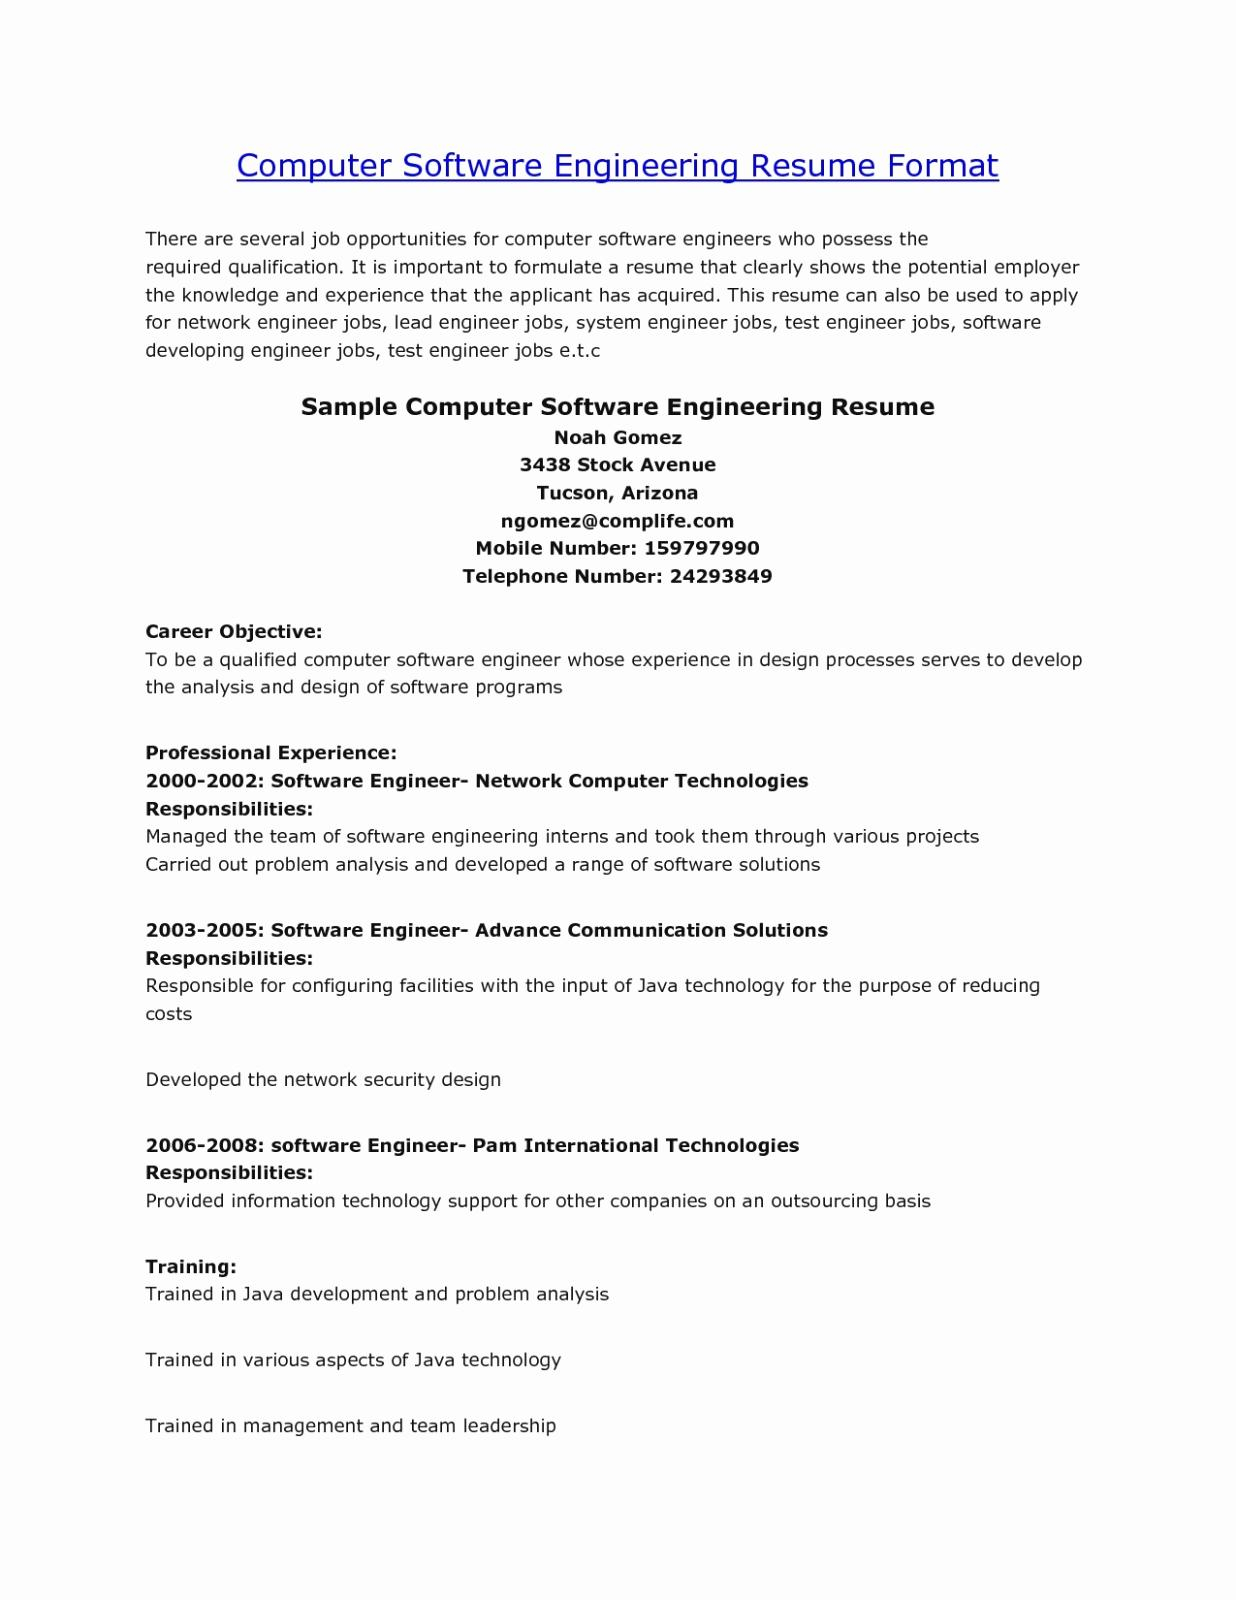 Production assistant Resume Template - Technical Support Engineer Resume format Fresh Production assistant